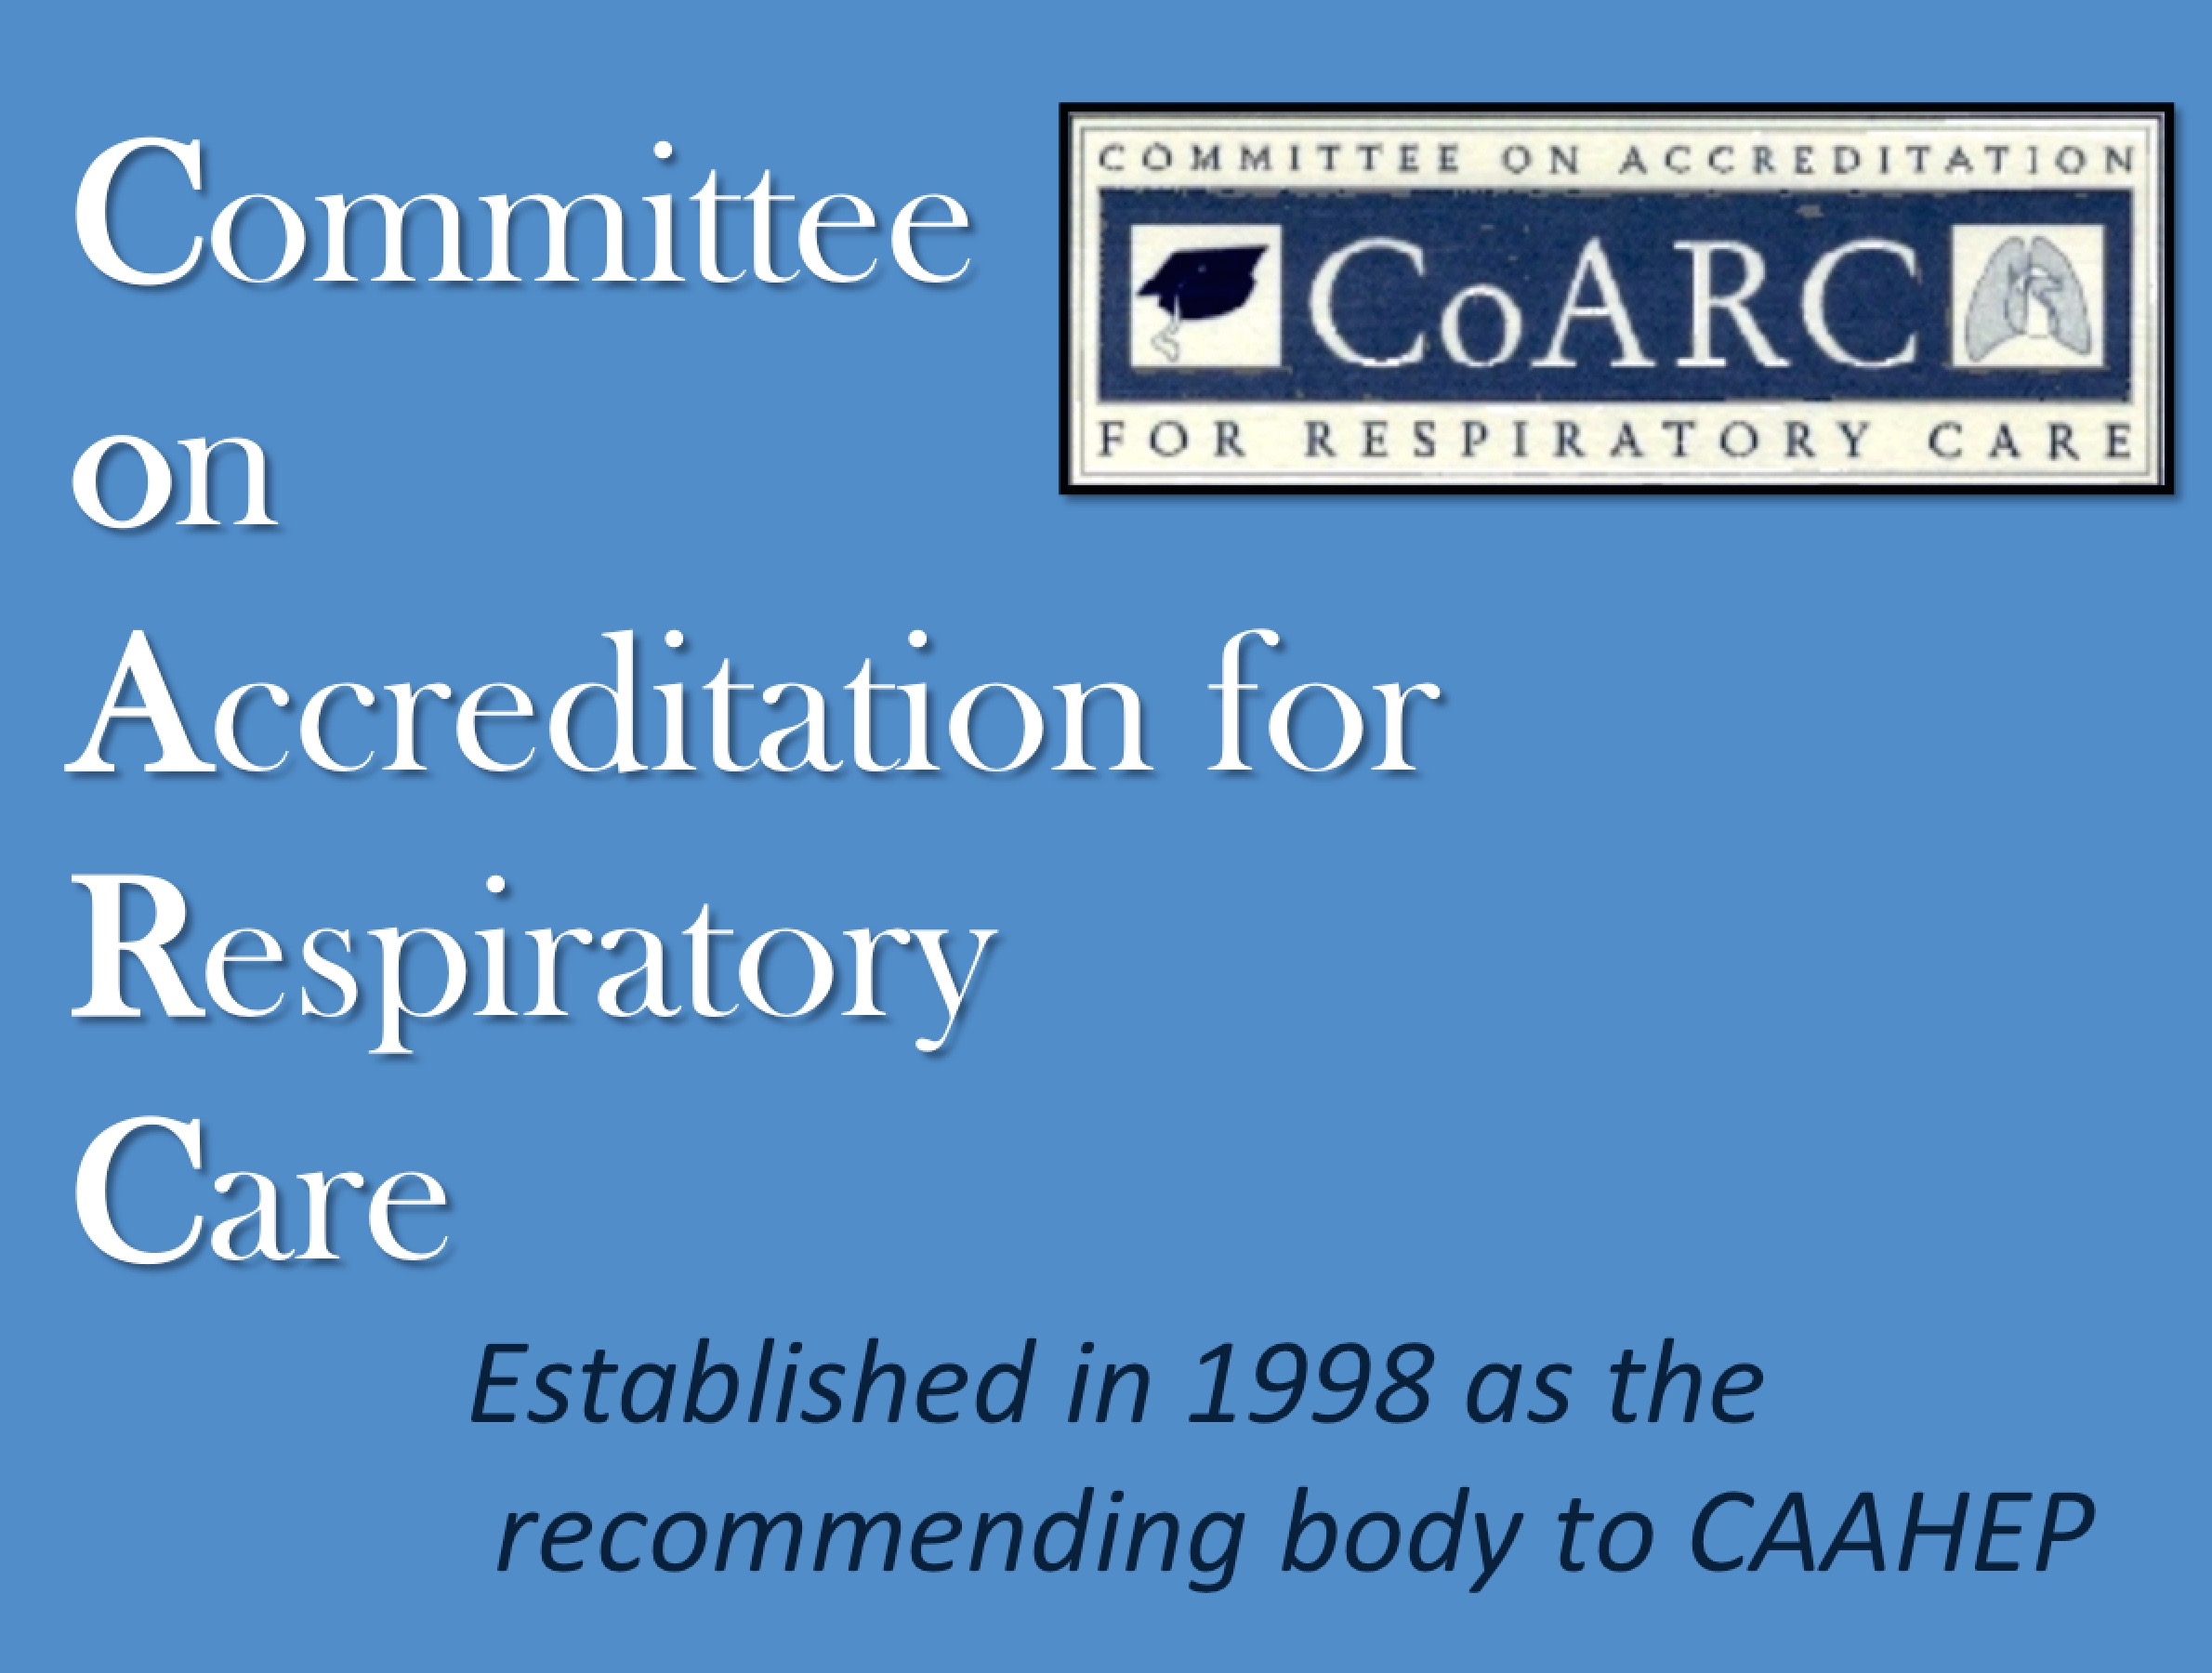 1998 CoARC Established